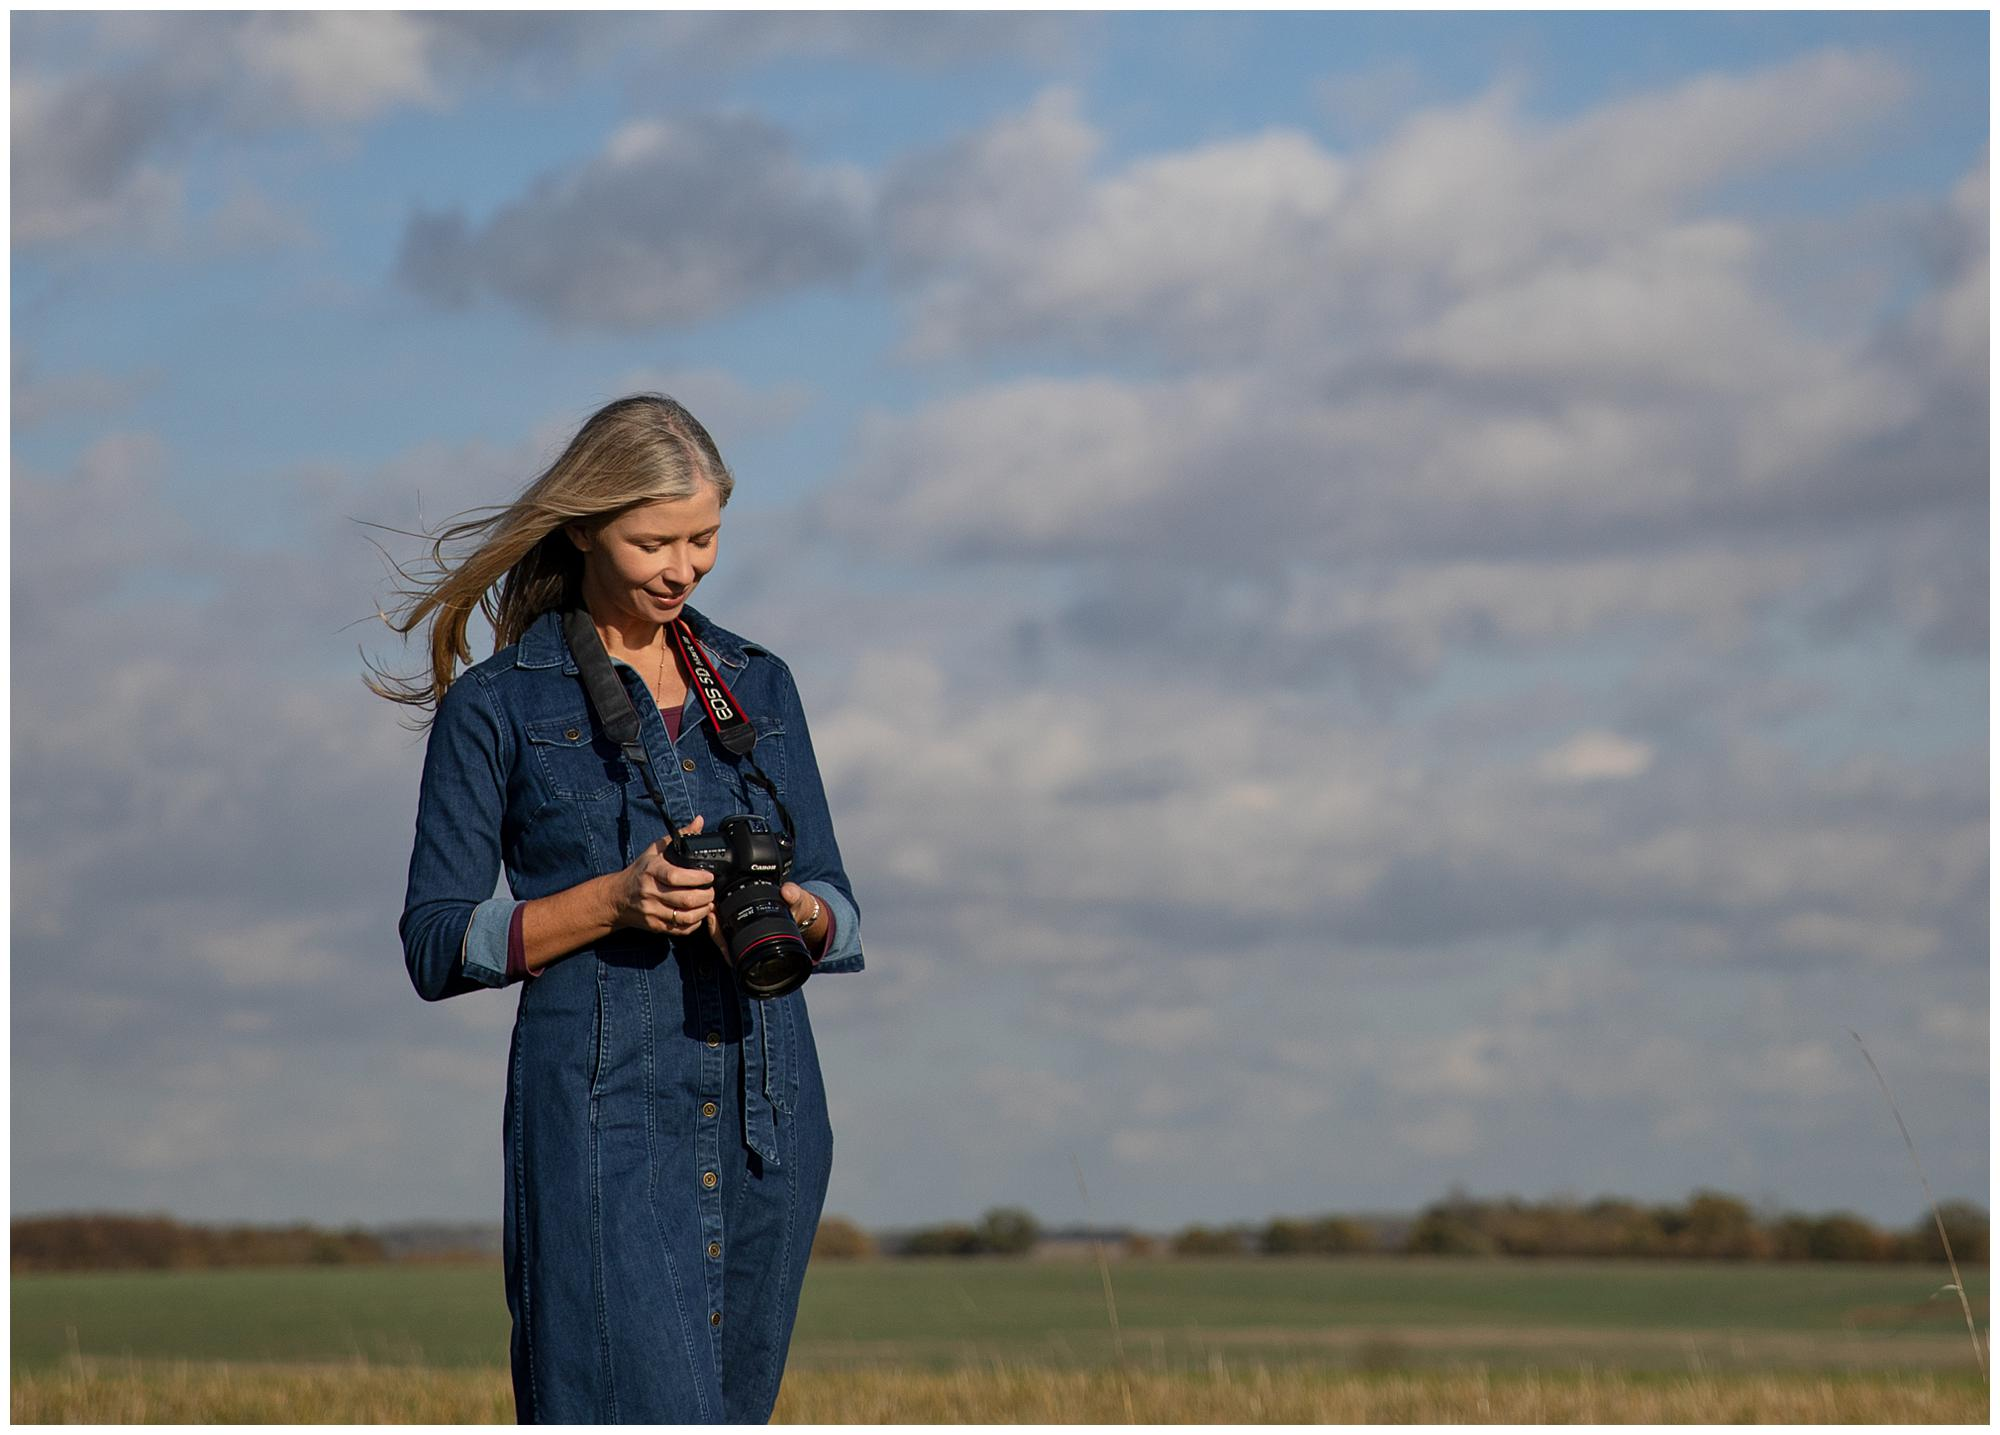 Female Photographer with long hair and a denim dress holds a camera in a field in Suffolk and smiles